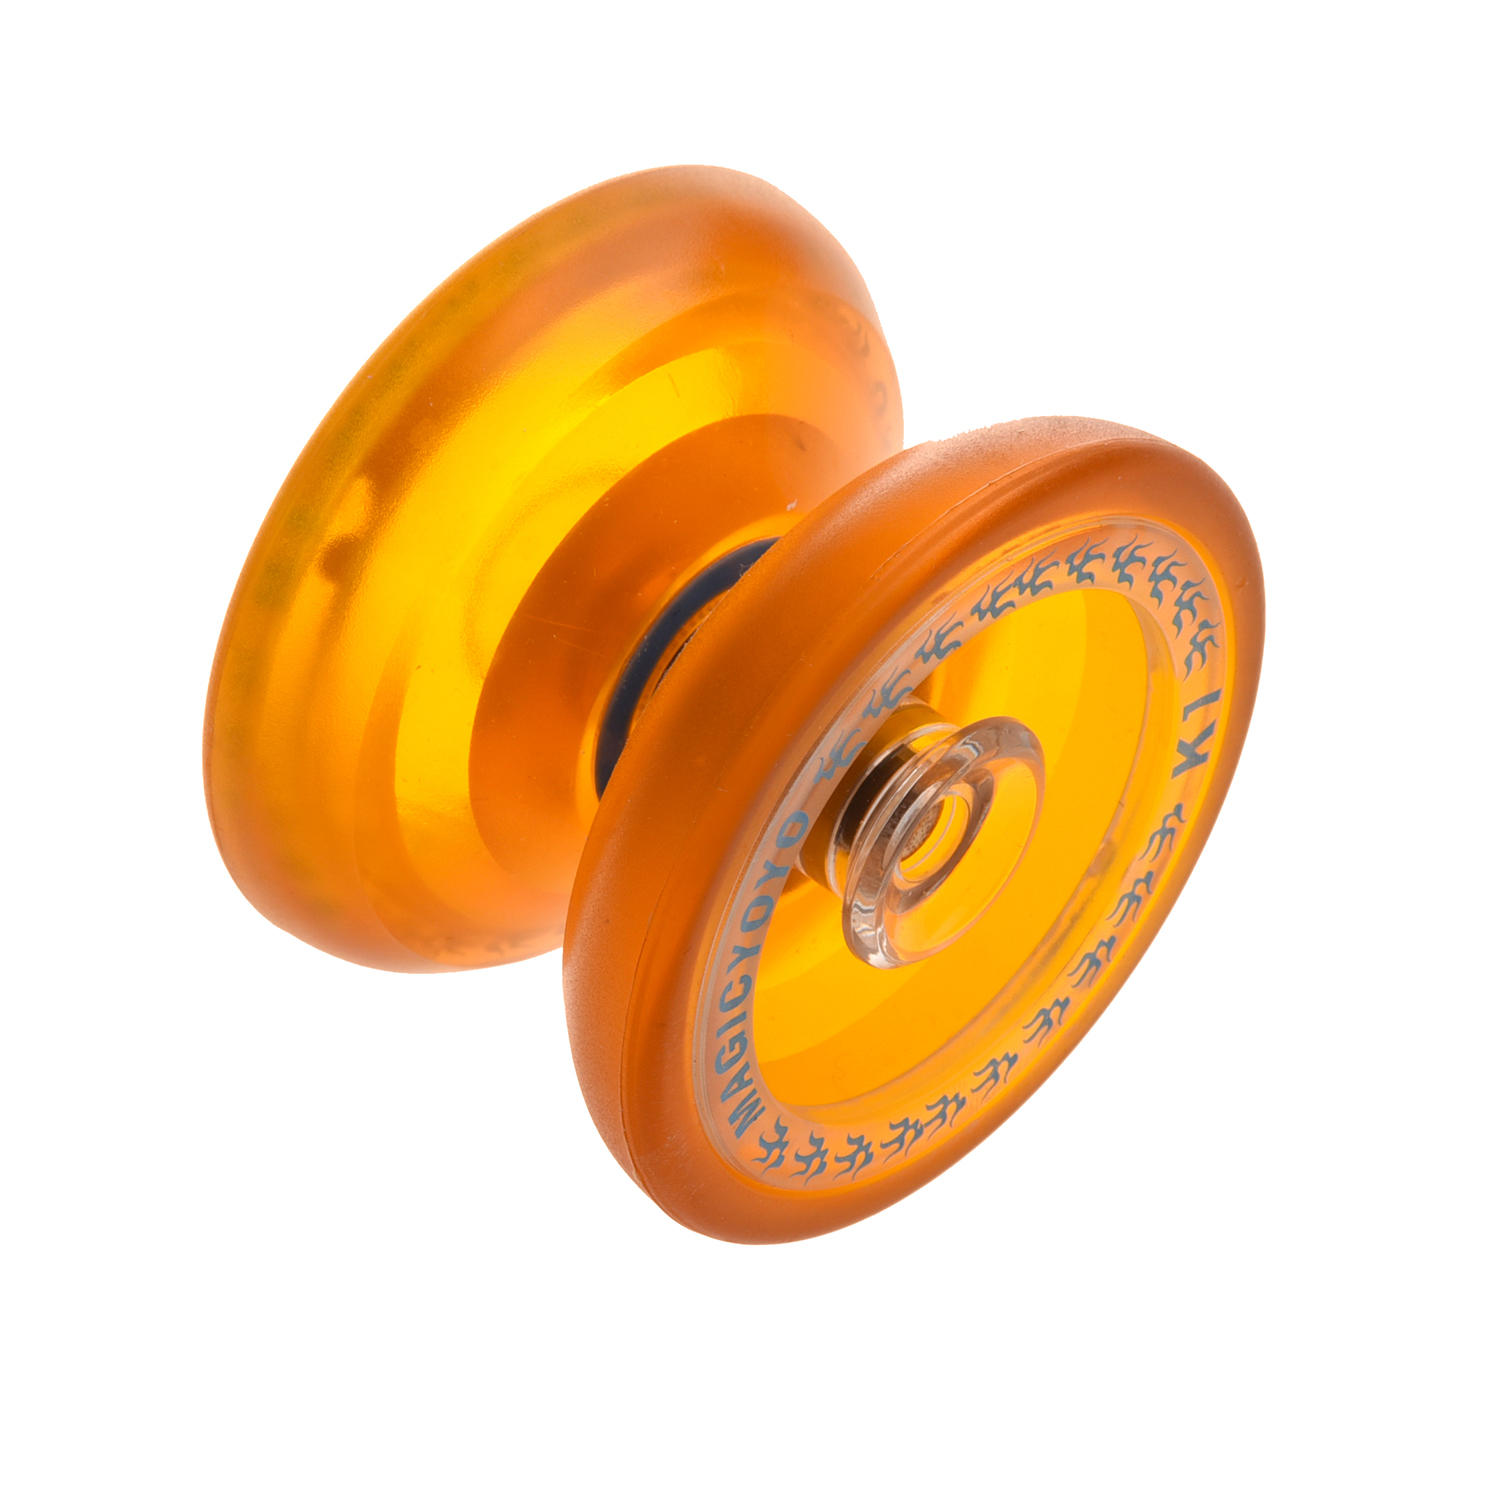 Small Animal Supplies Beautiful Magicyoyo K1 Spin Abs Yoyo New Pvc Professional Yoyo Toys With Hubstacks Orange Random Color To Rank First Among Similar Products